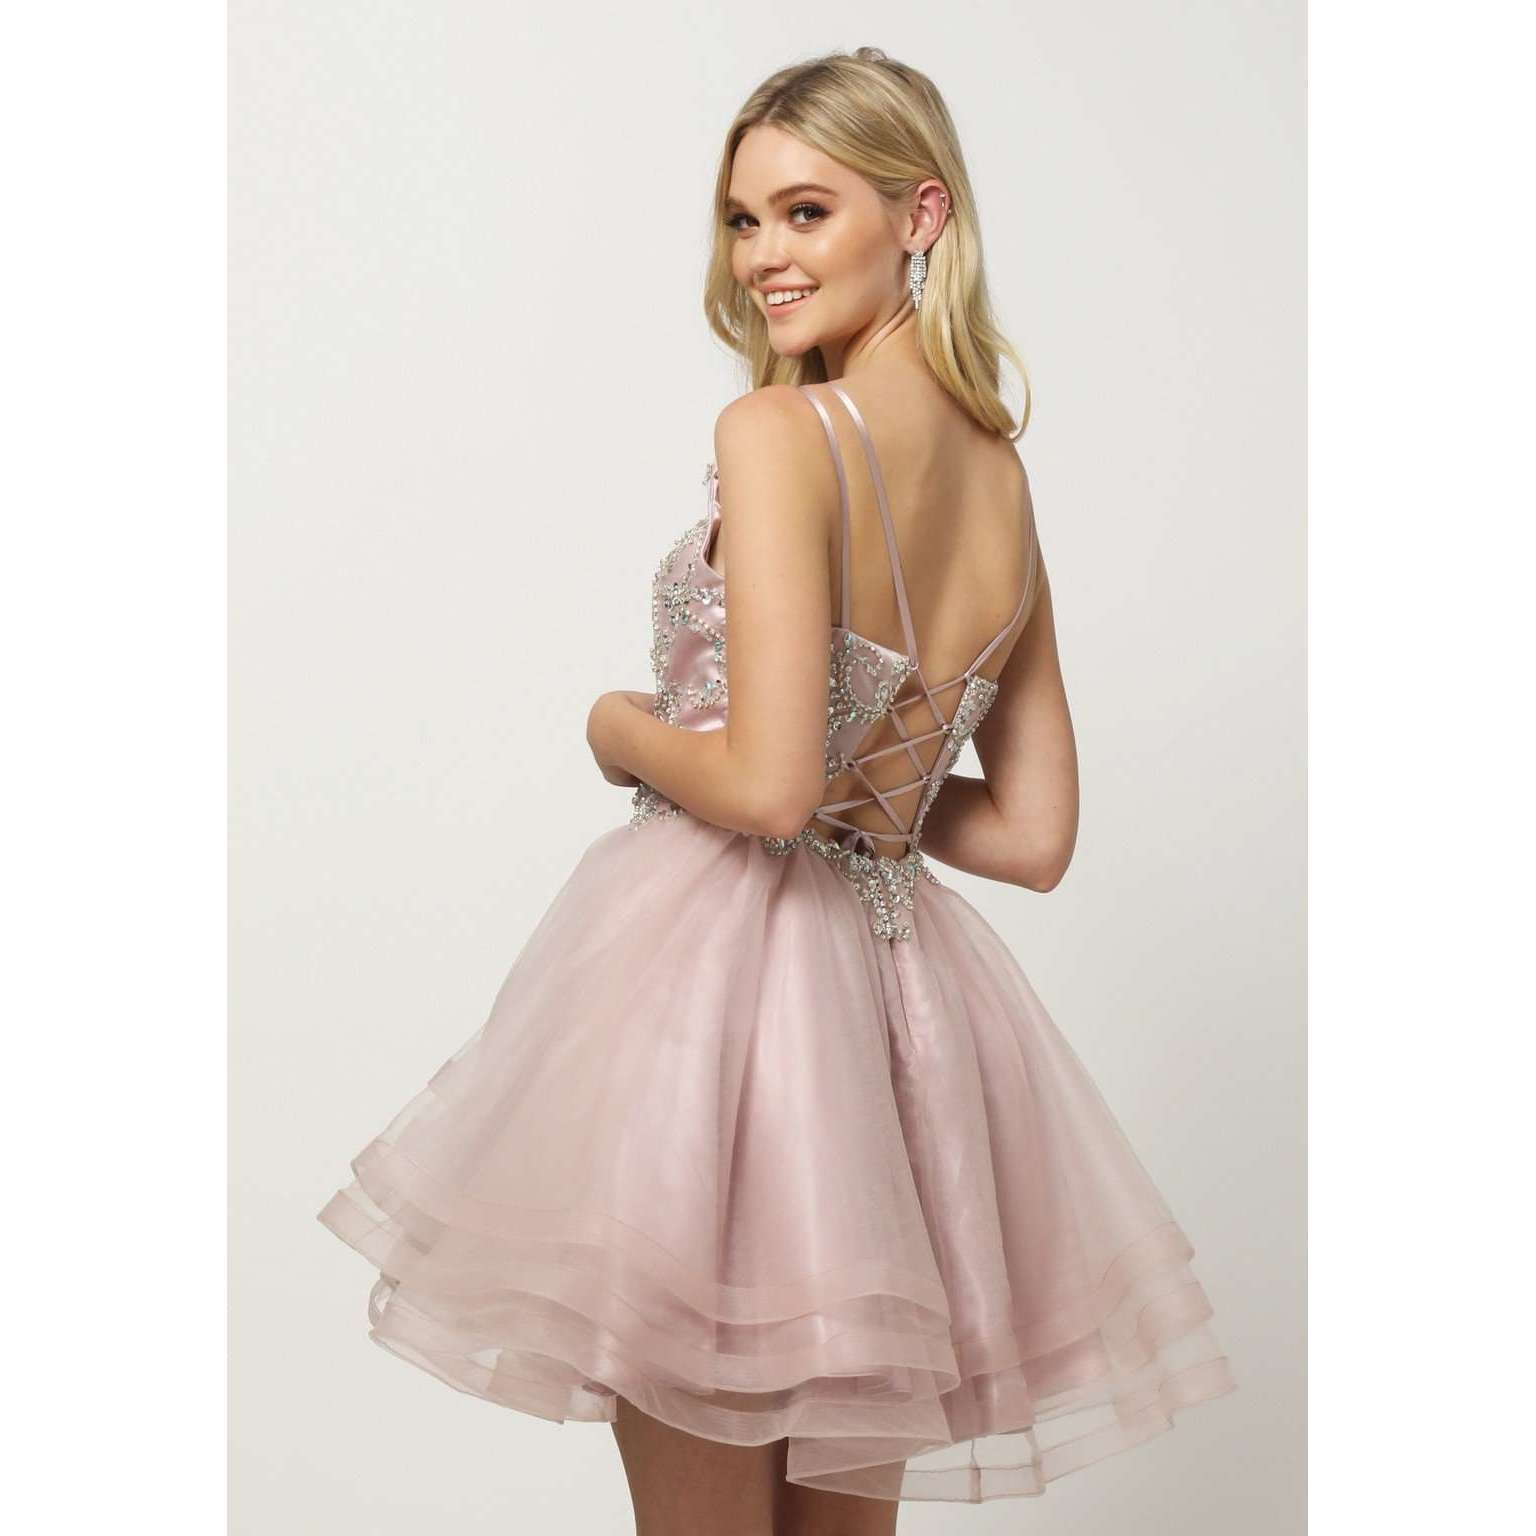 Beaded Bodice Tiered Short Dress 831 - Julietdresses